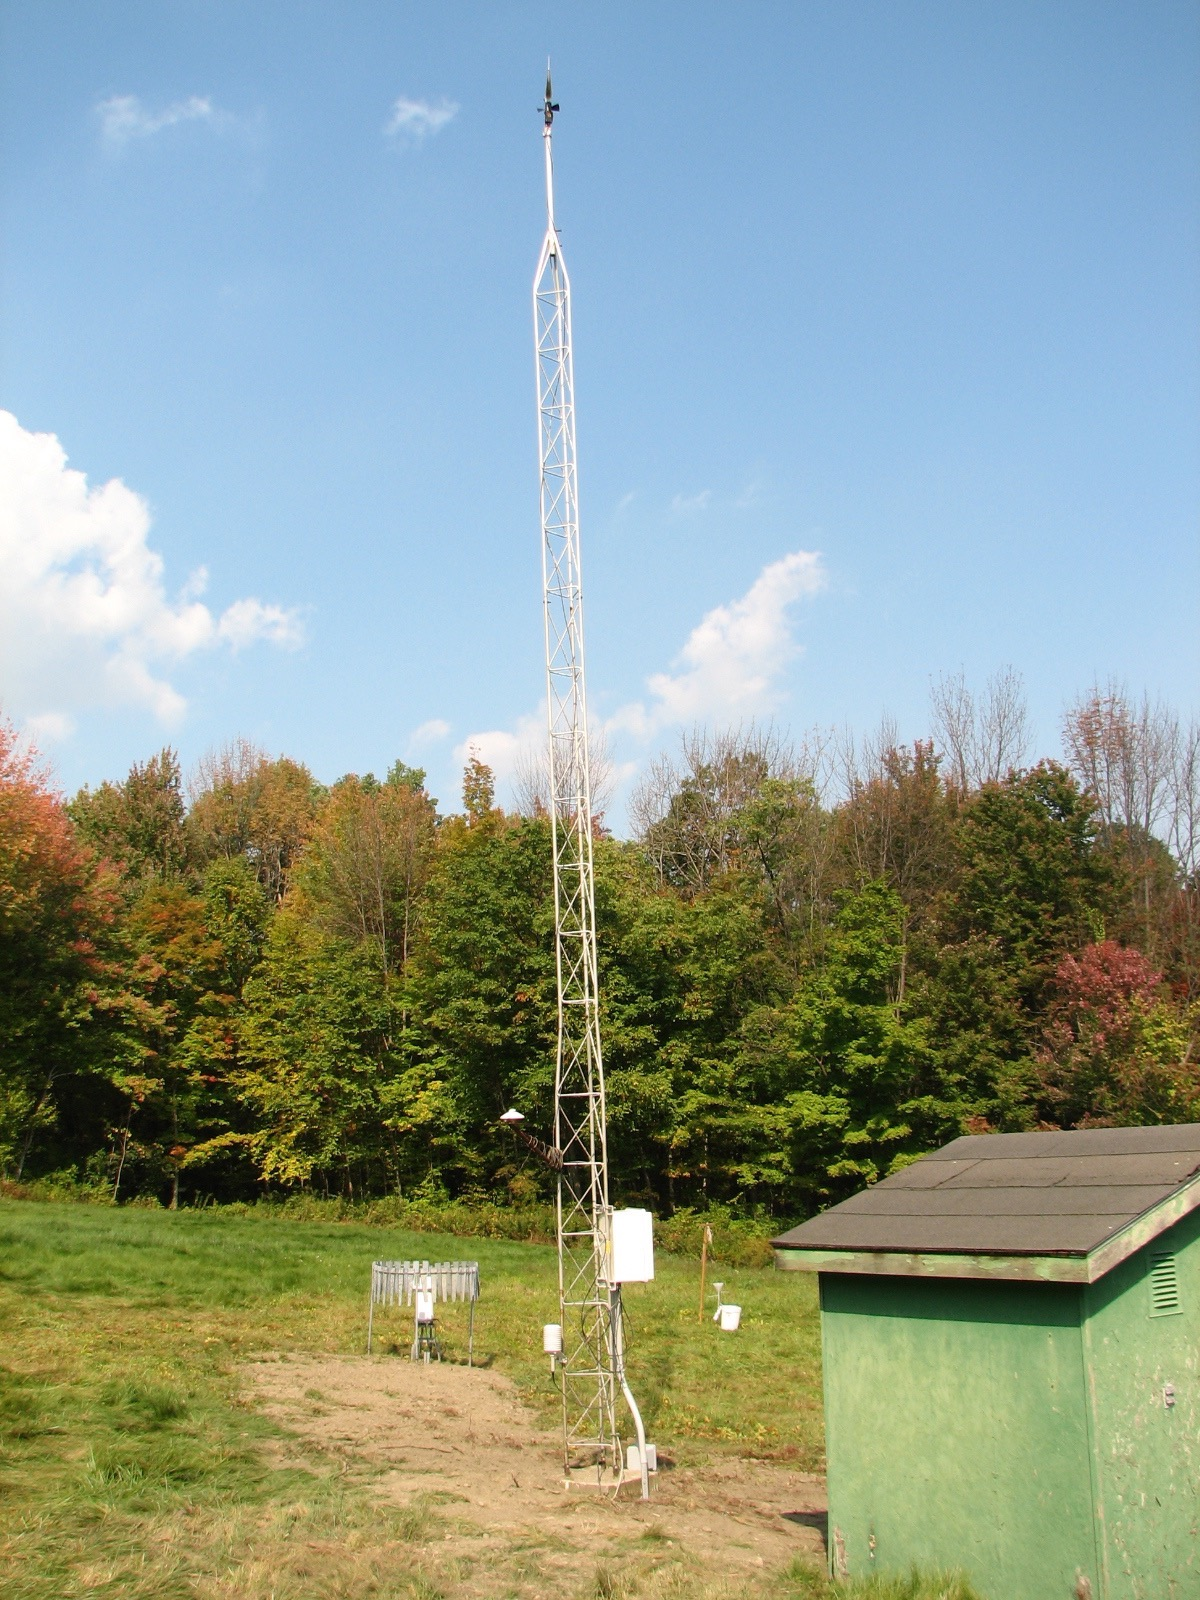 Station 1 in Hopkins Memorial Forest